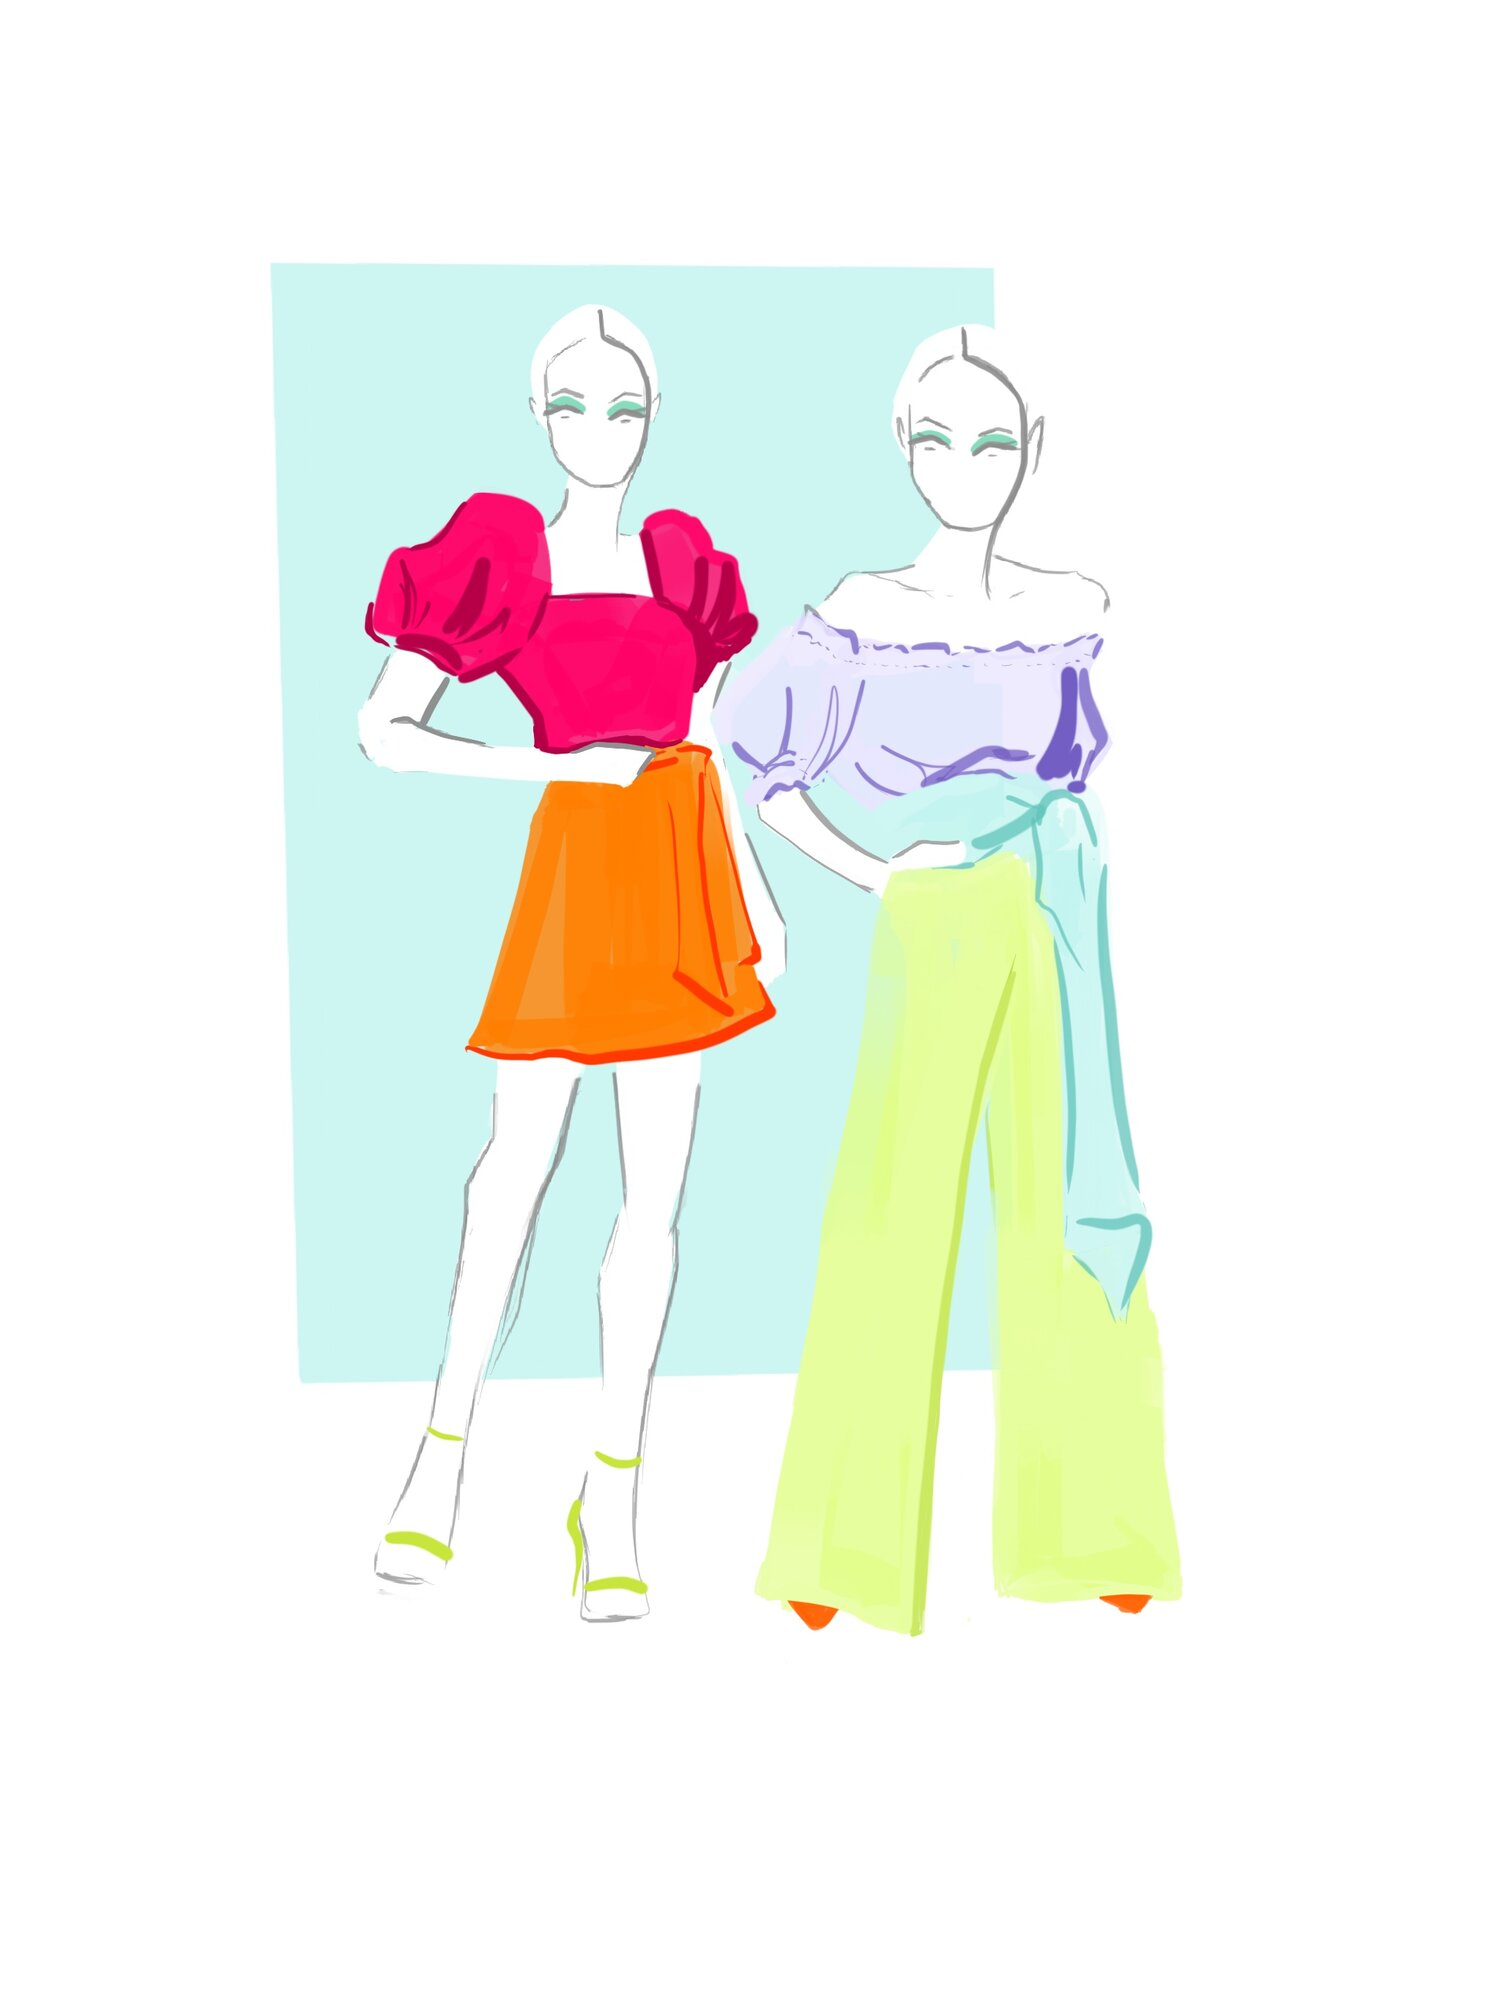 alice-and-olivia-01-nyfw-fashion-illustration-by-stephanie-anne.jpg